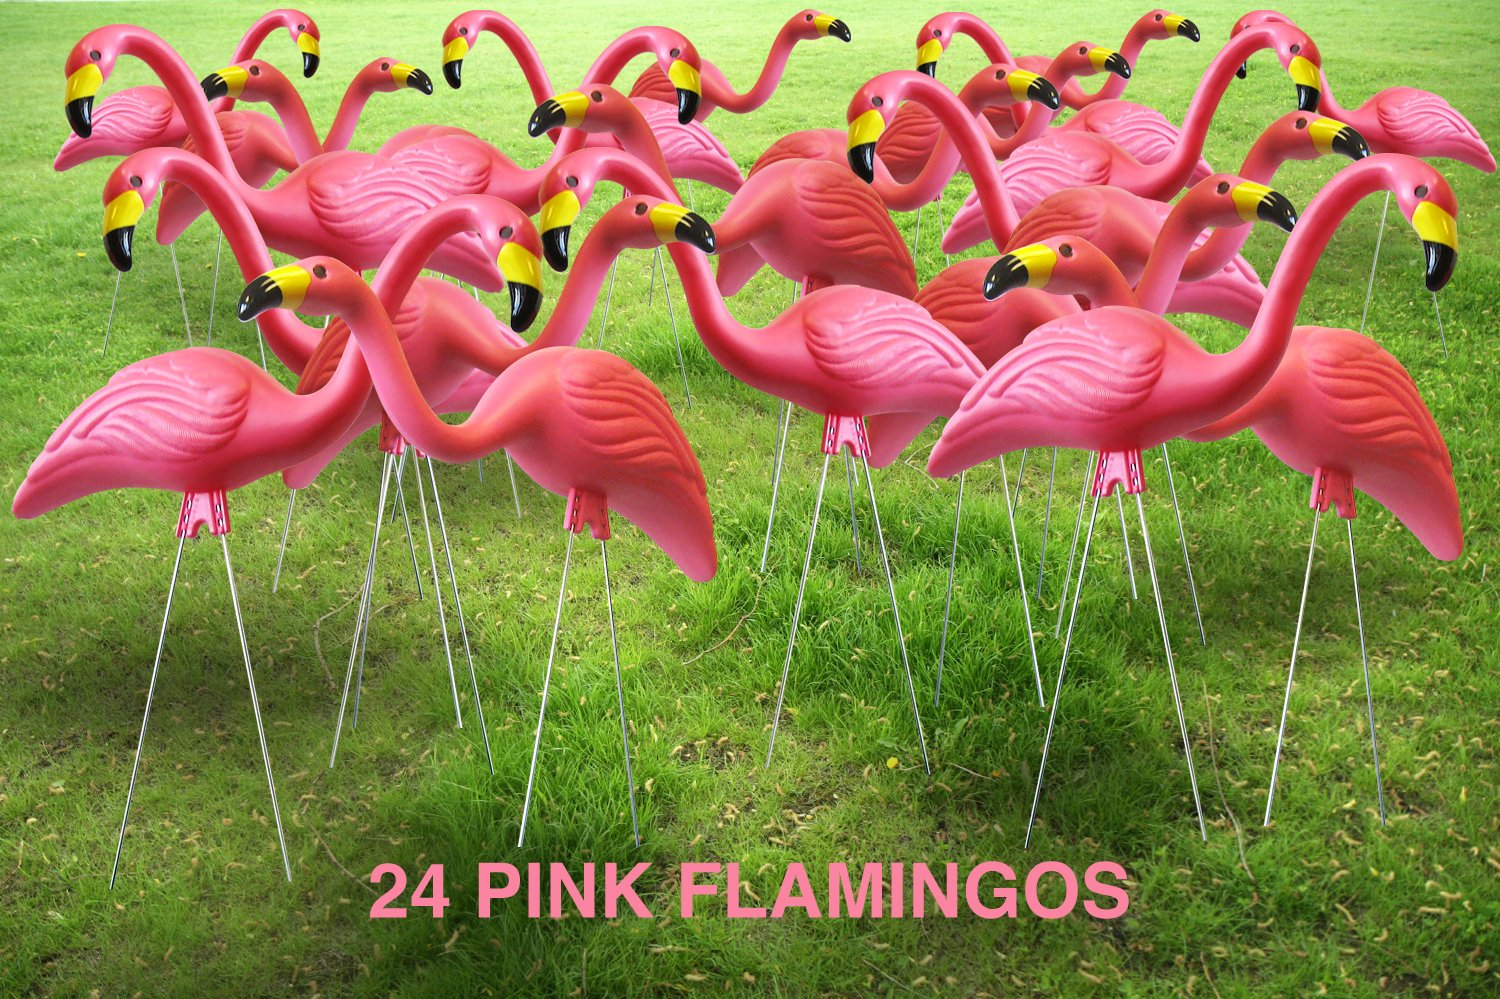 Flamingo garden ornament - Amazon Com Garden Plast Pink Flamingos 10 Pack Outdoor Statues Patio Lawn Garden